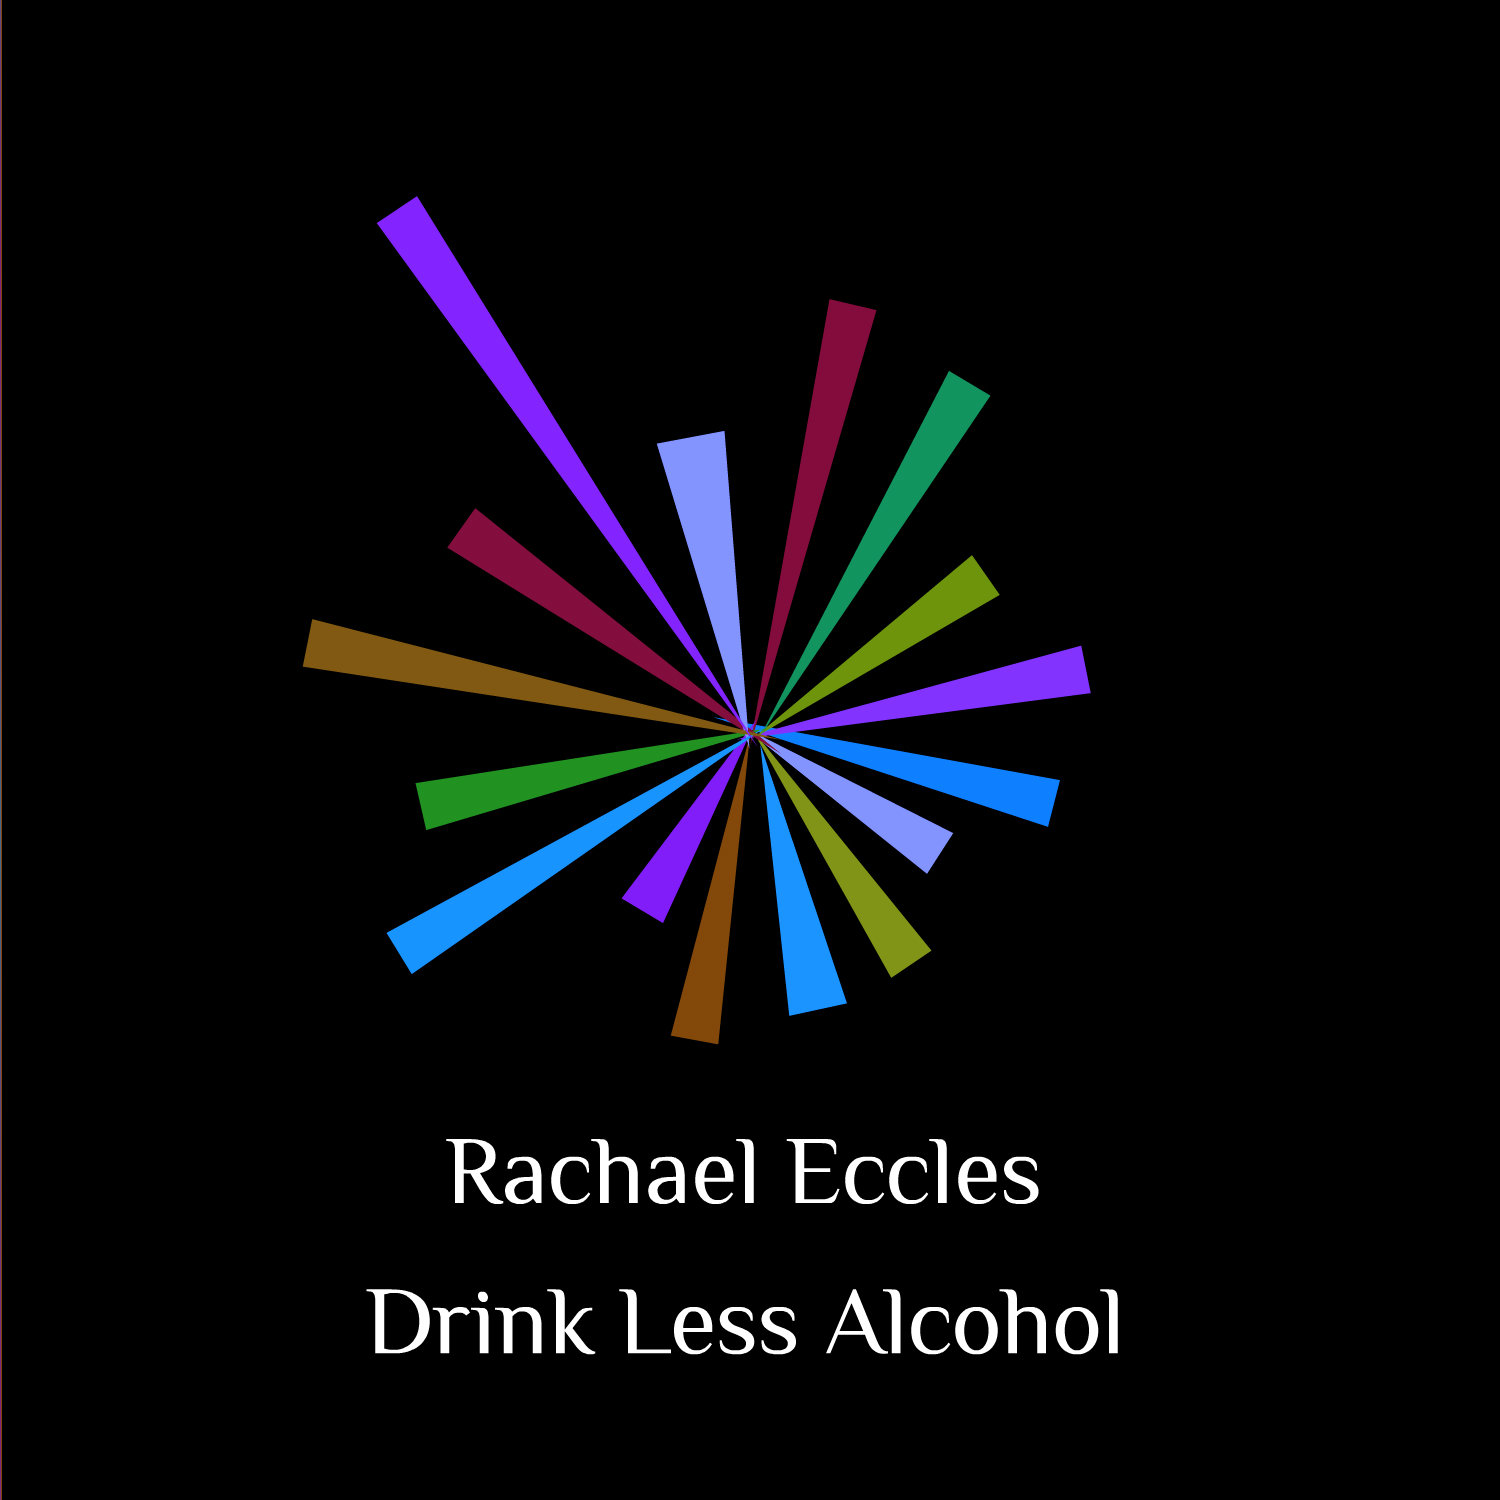 Drink Less Alcohol, Cut Down Drinking Hypnotherapy Hypnosis Download or CD